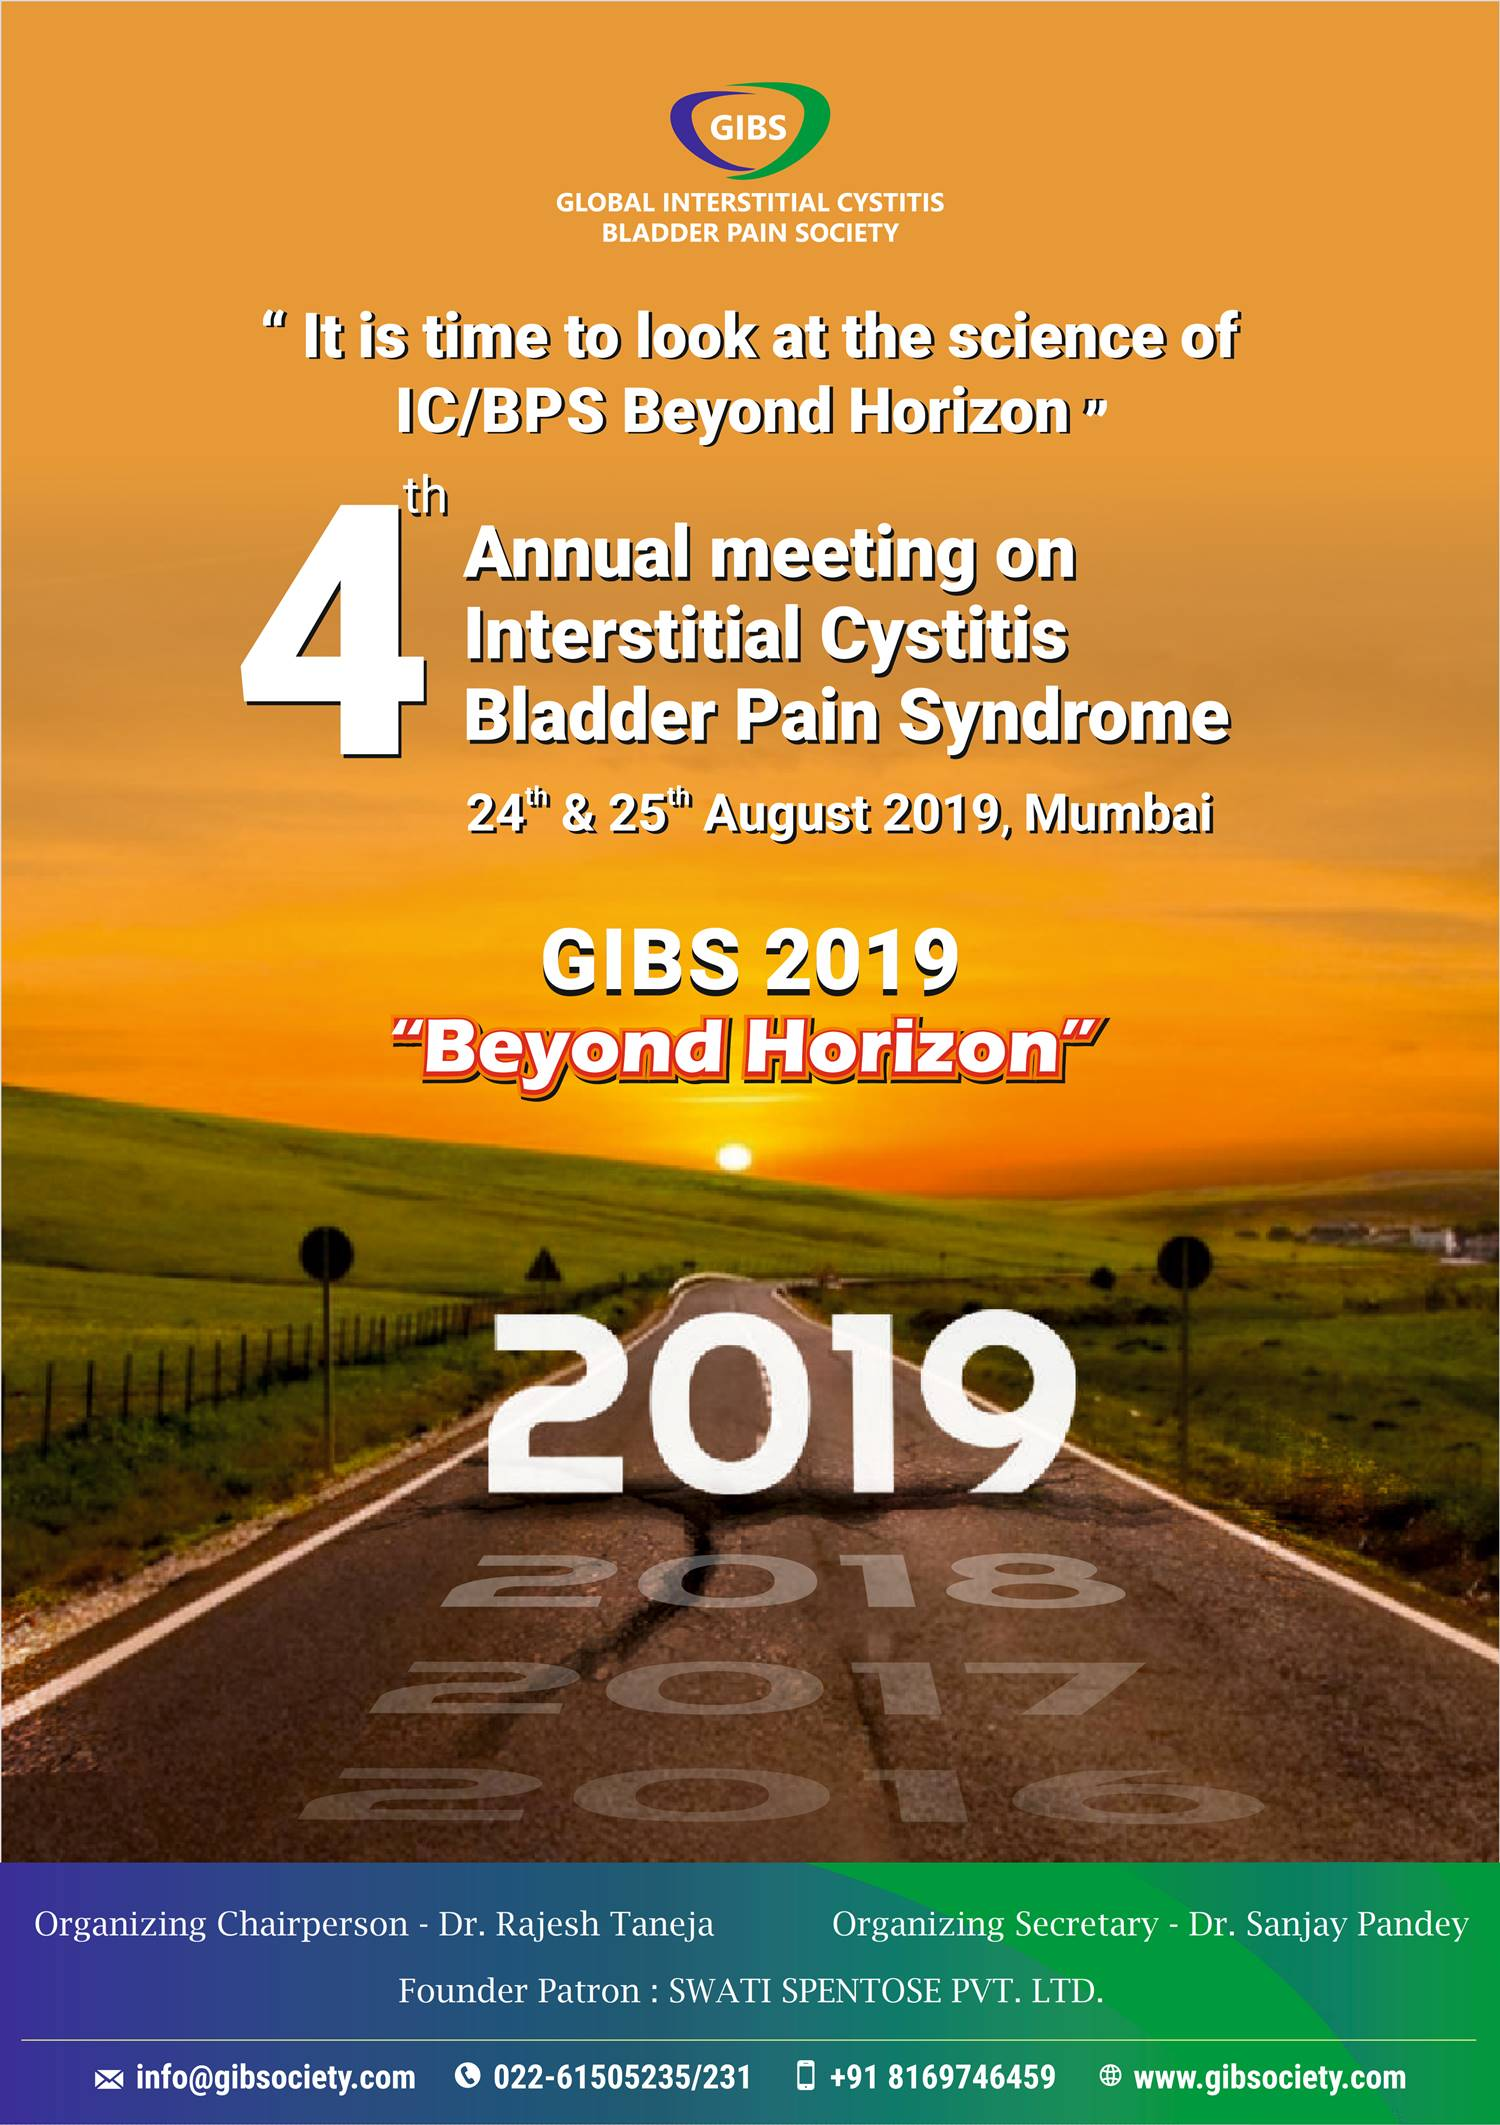 4th Annual Conference of the Global Interstitial Cystitis Bladder Pain Society (GIBS)